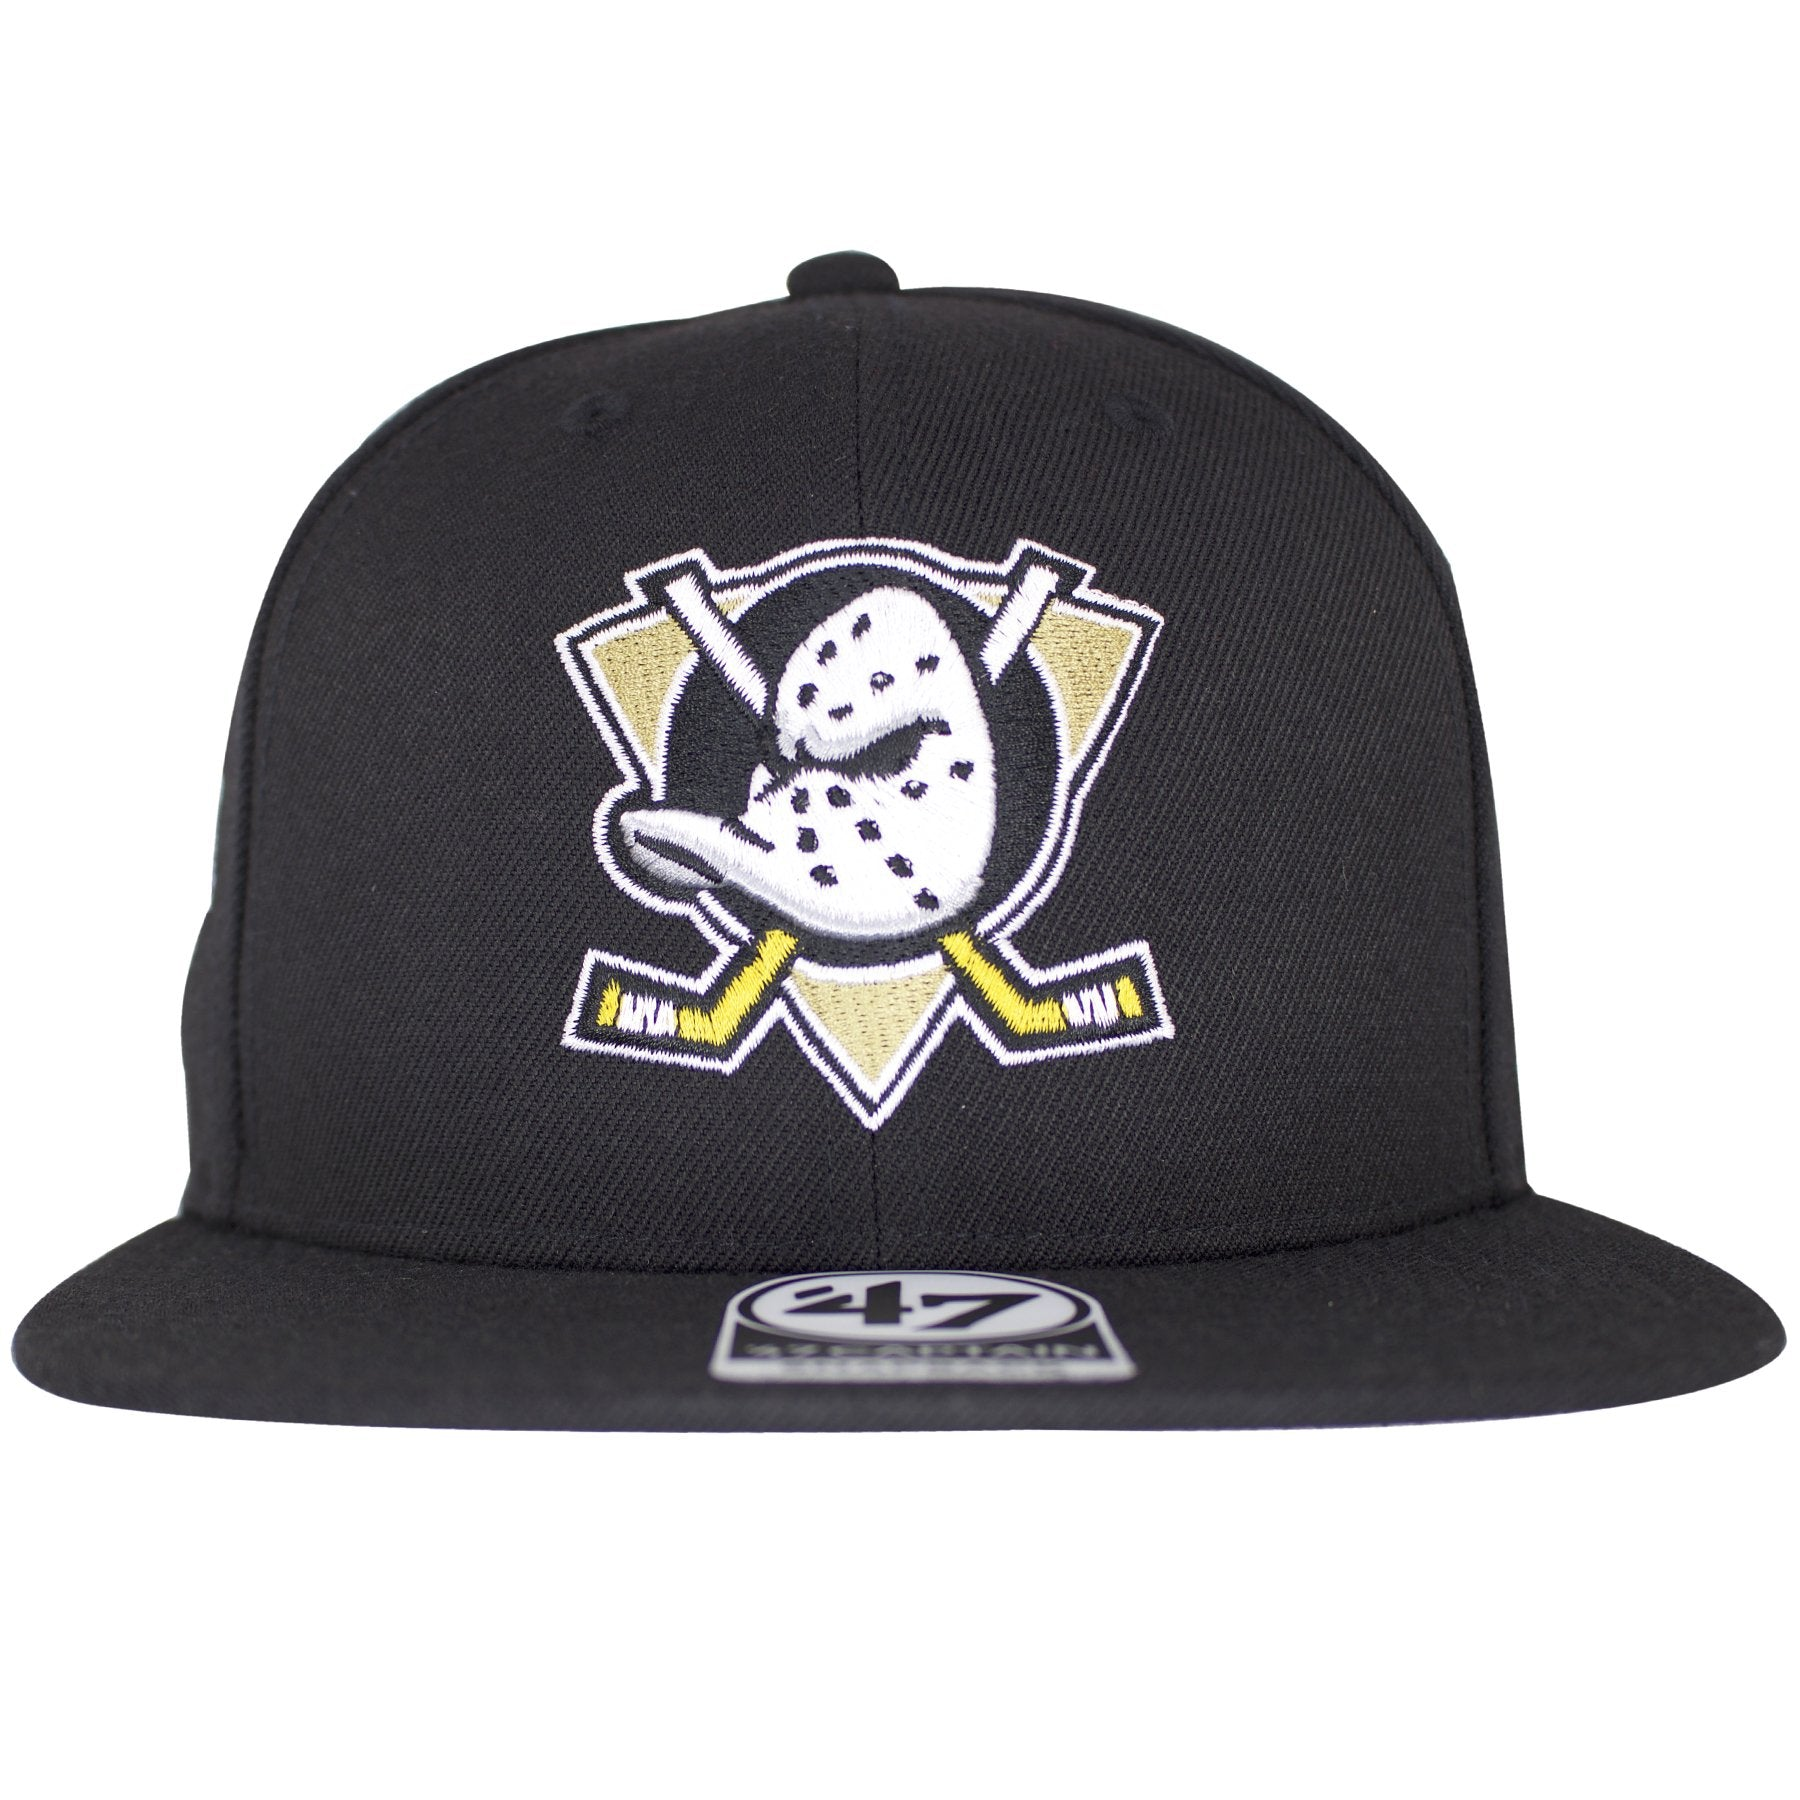 this anaheim mighty ducks snapback hat has the mighty ducks symbol on the front of a